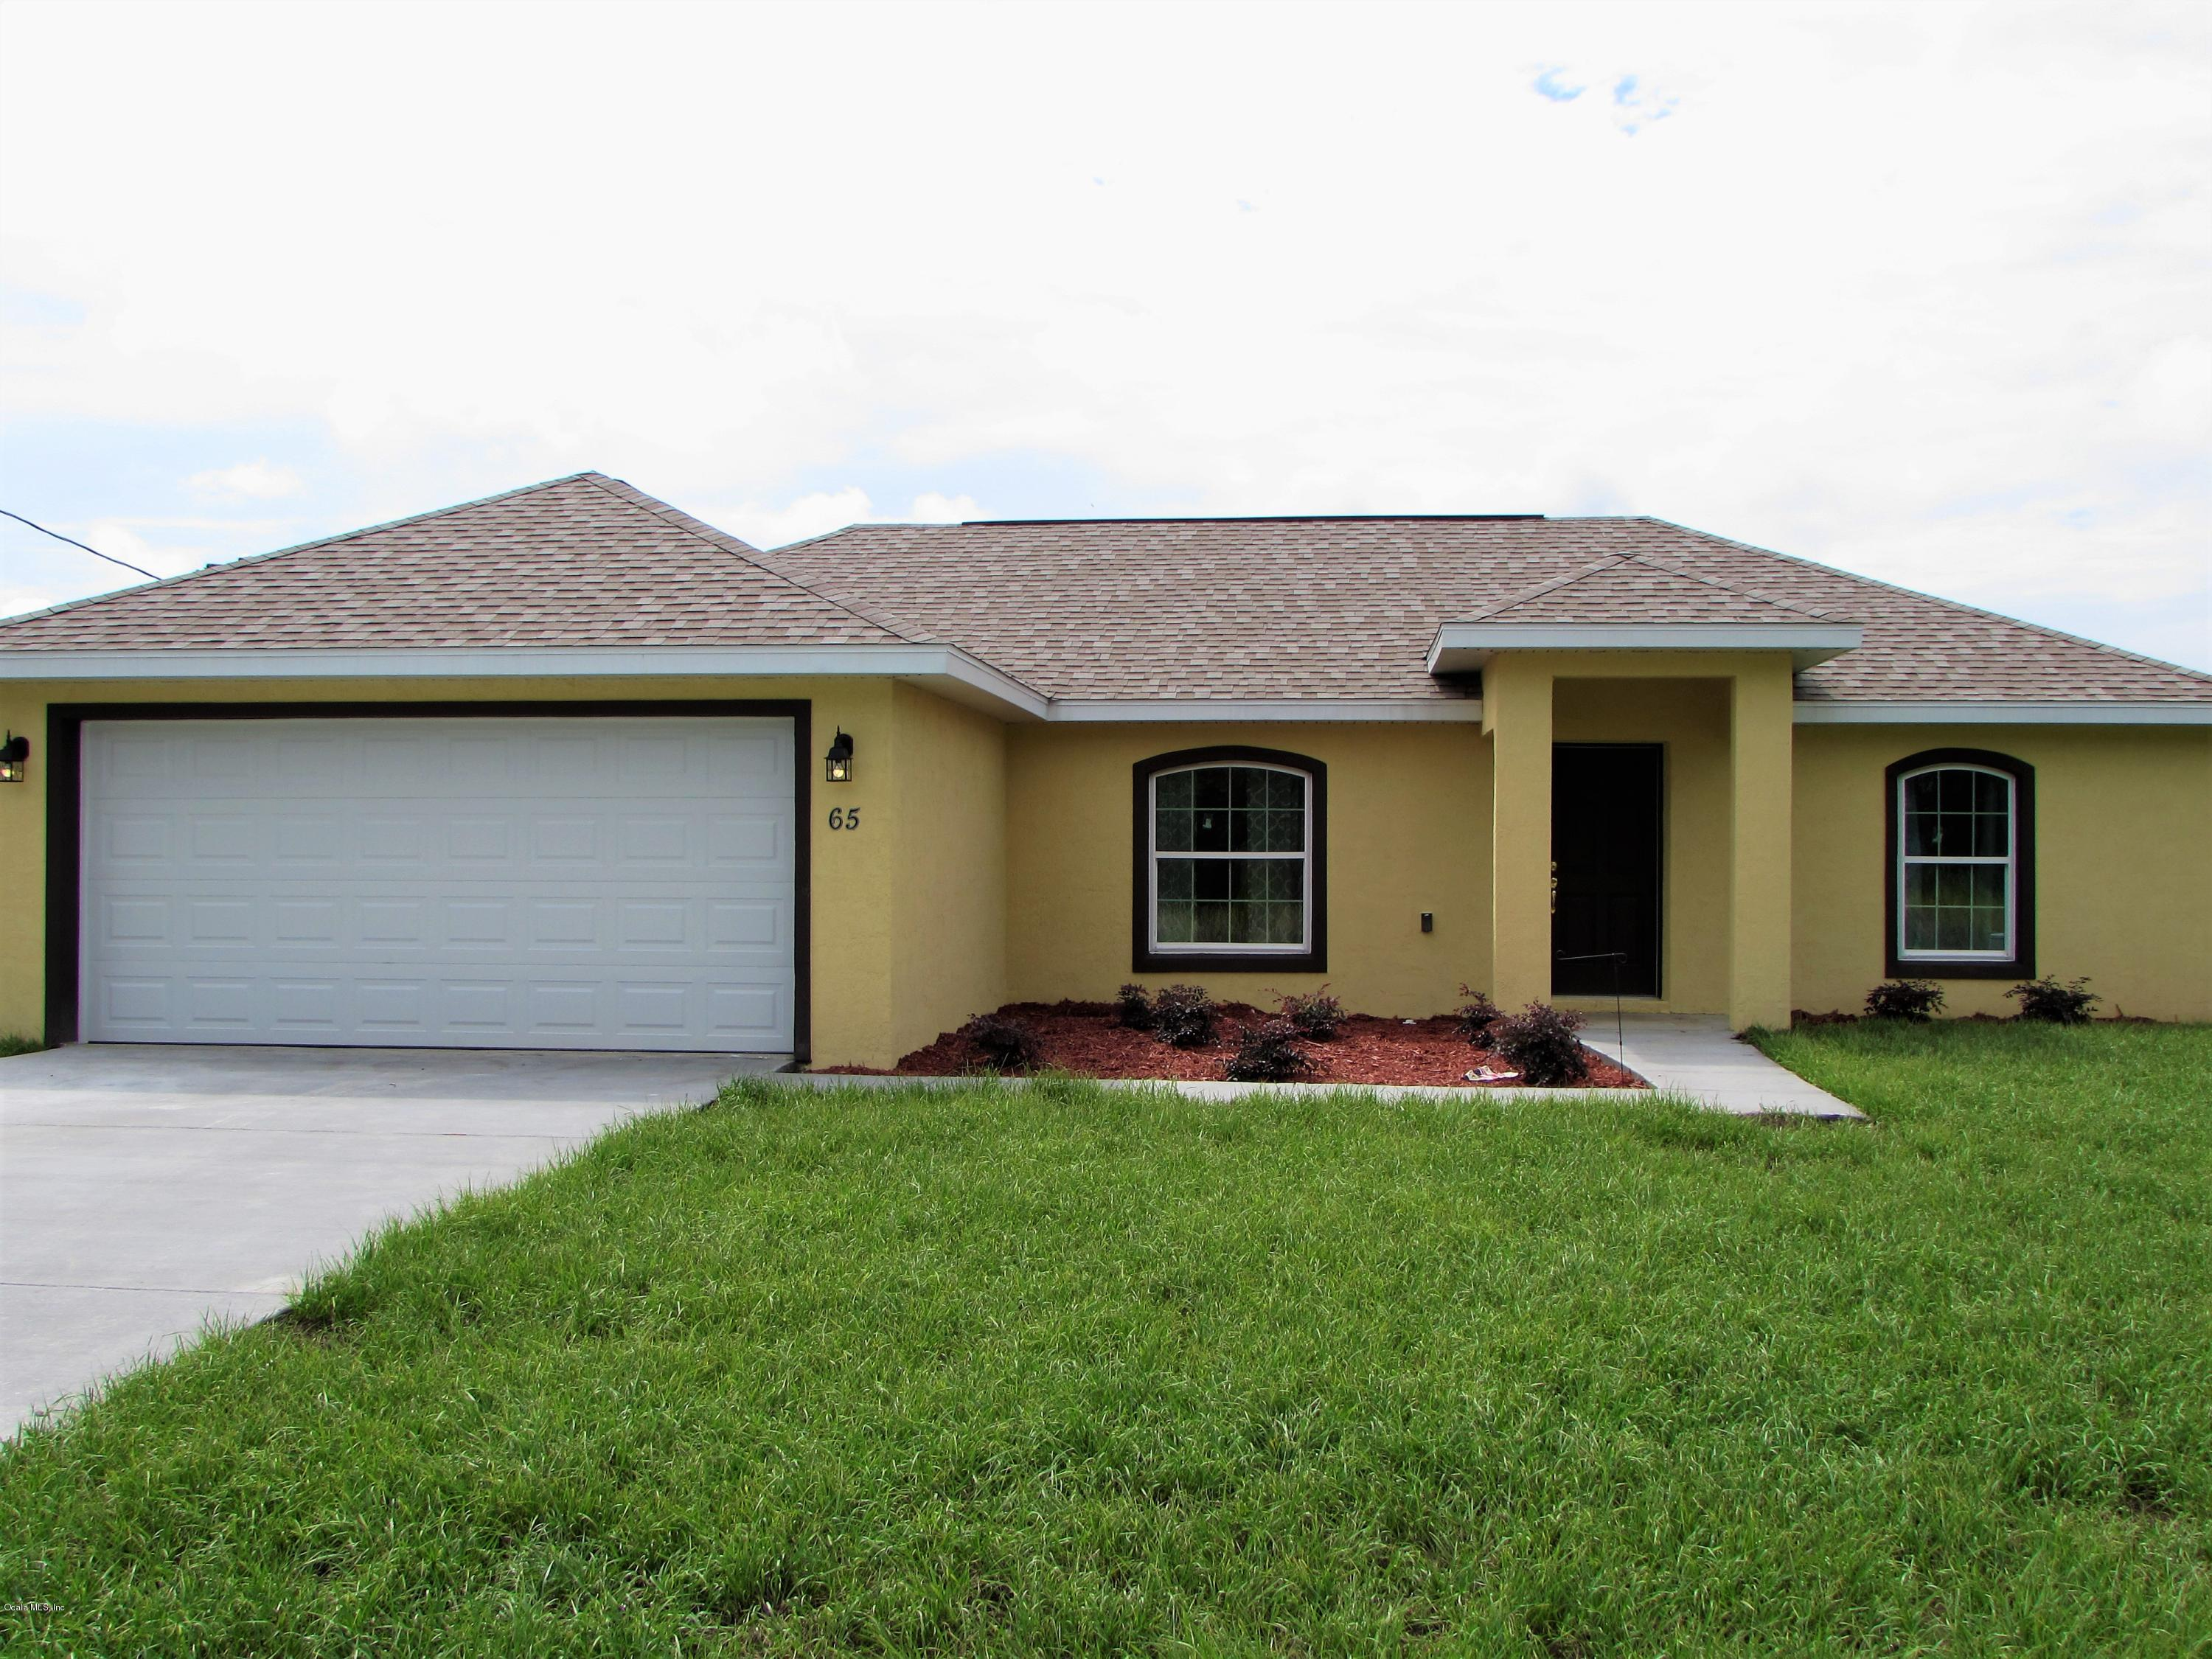 65 DOGWOOD DRIVE LOOP, OCALA, FL 34472